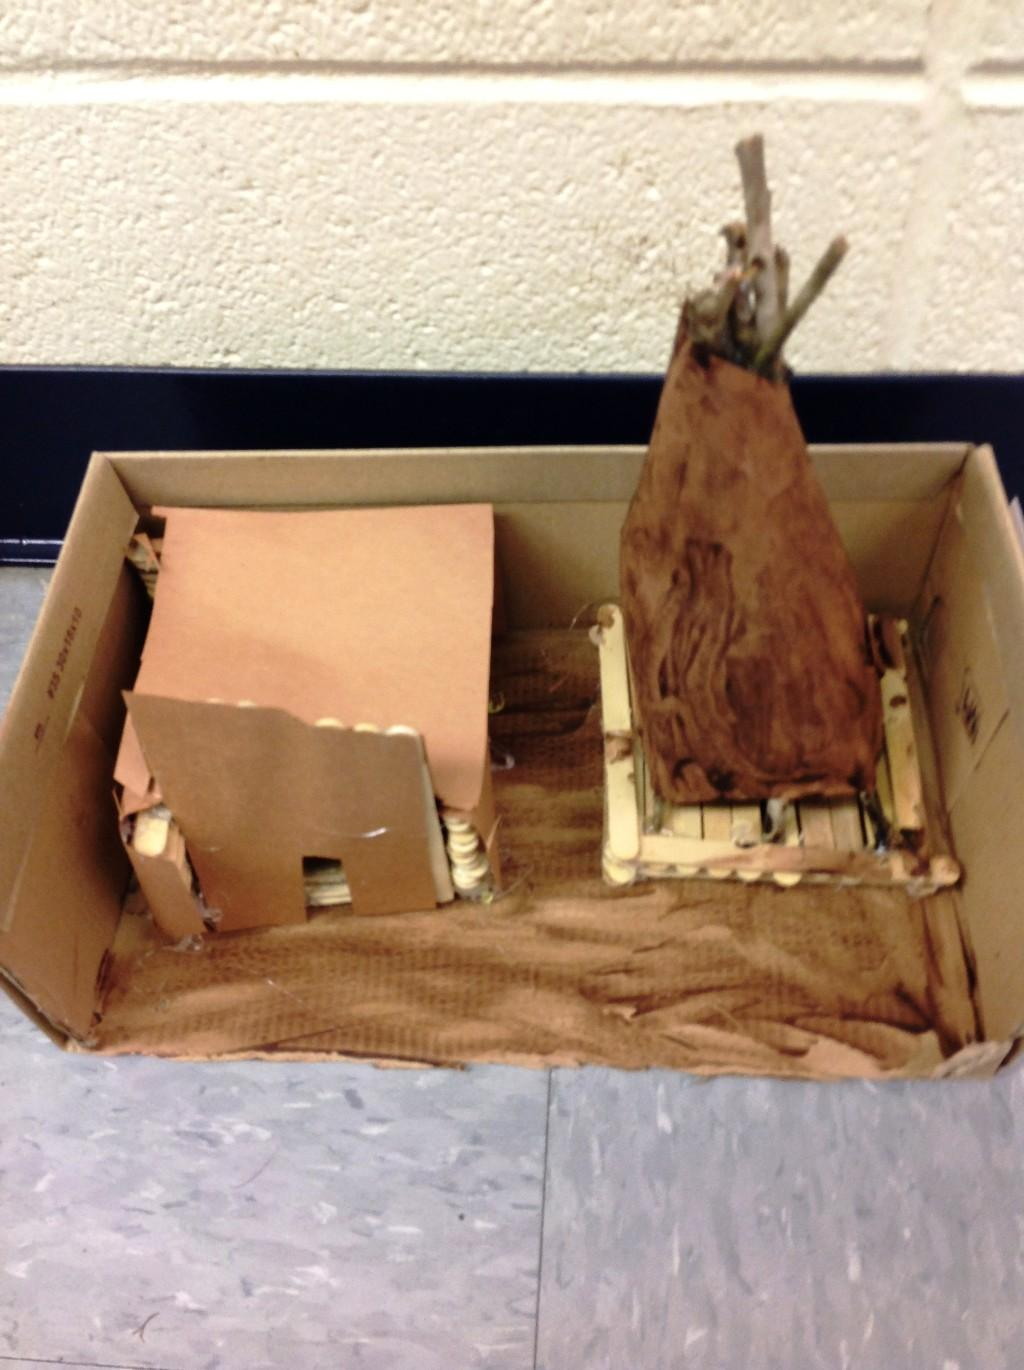 and another Native American Diorama